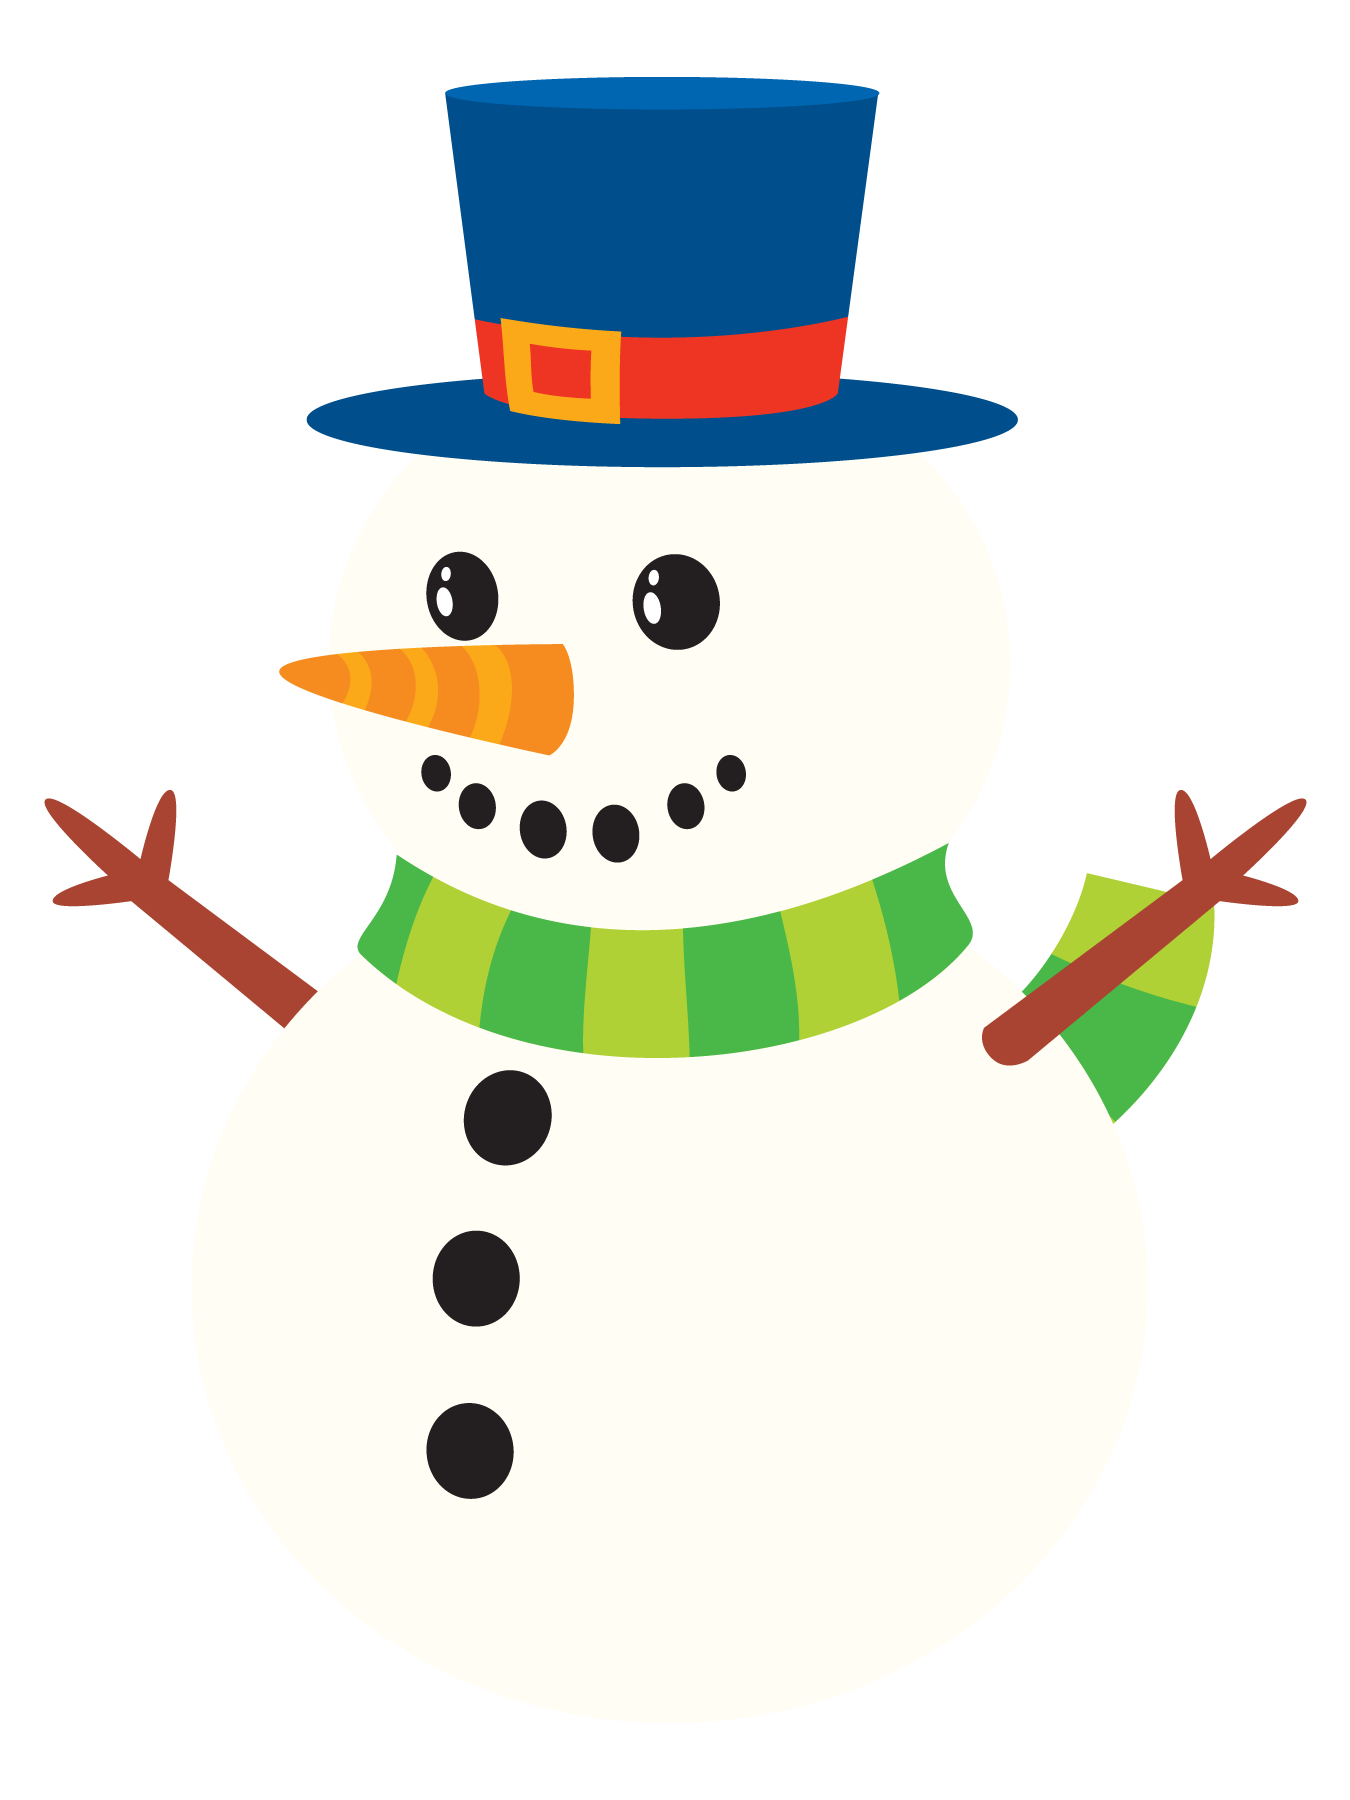 Snowman clipart cute 10 Snowman to Snowman art